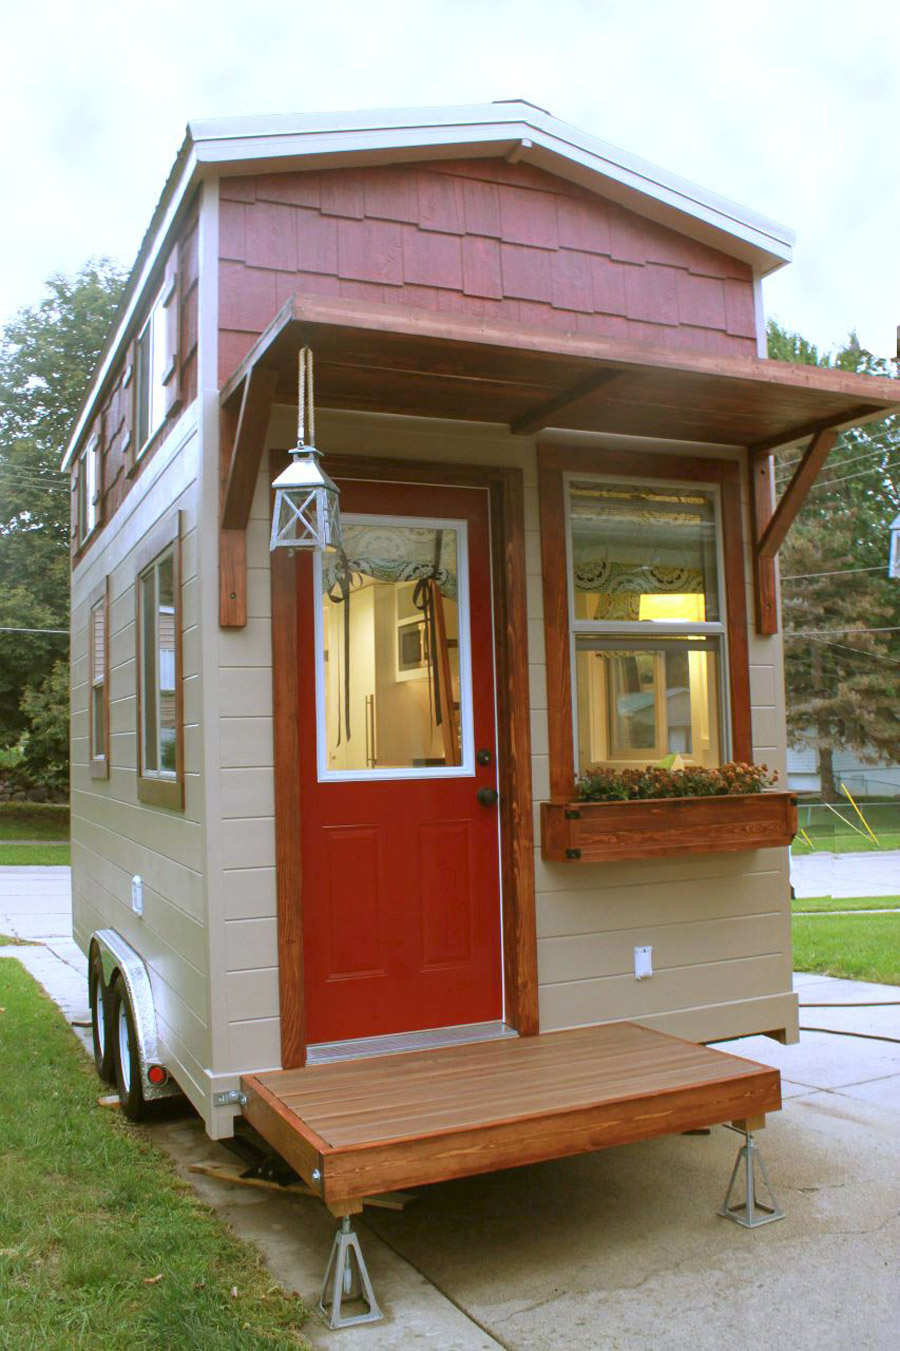 High plains tiny house tiny house swoon Tiny little houses on wheels